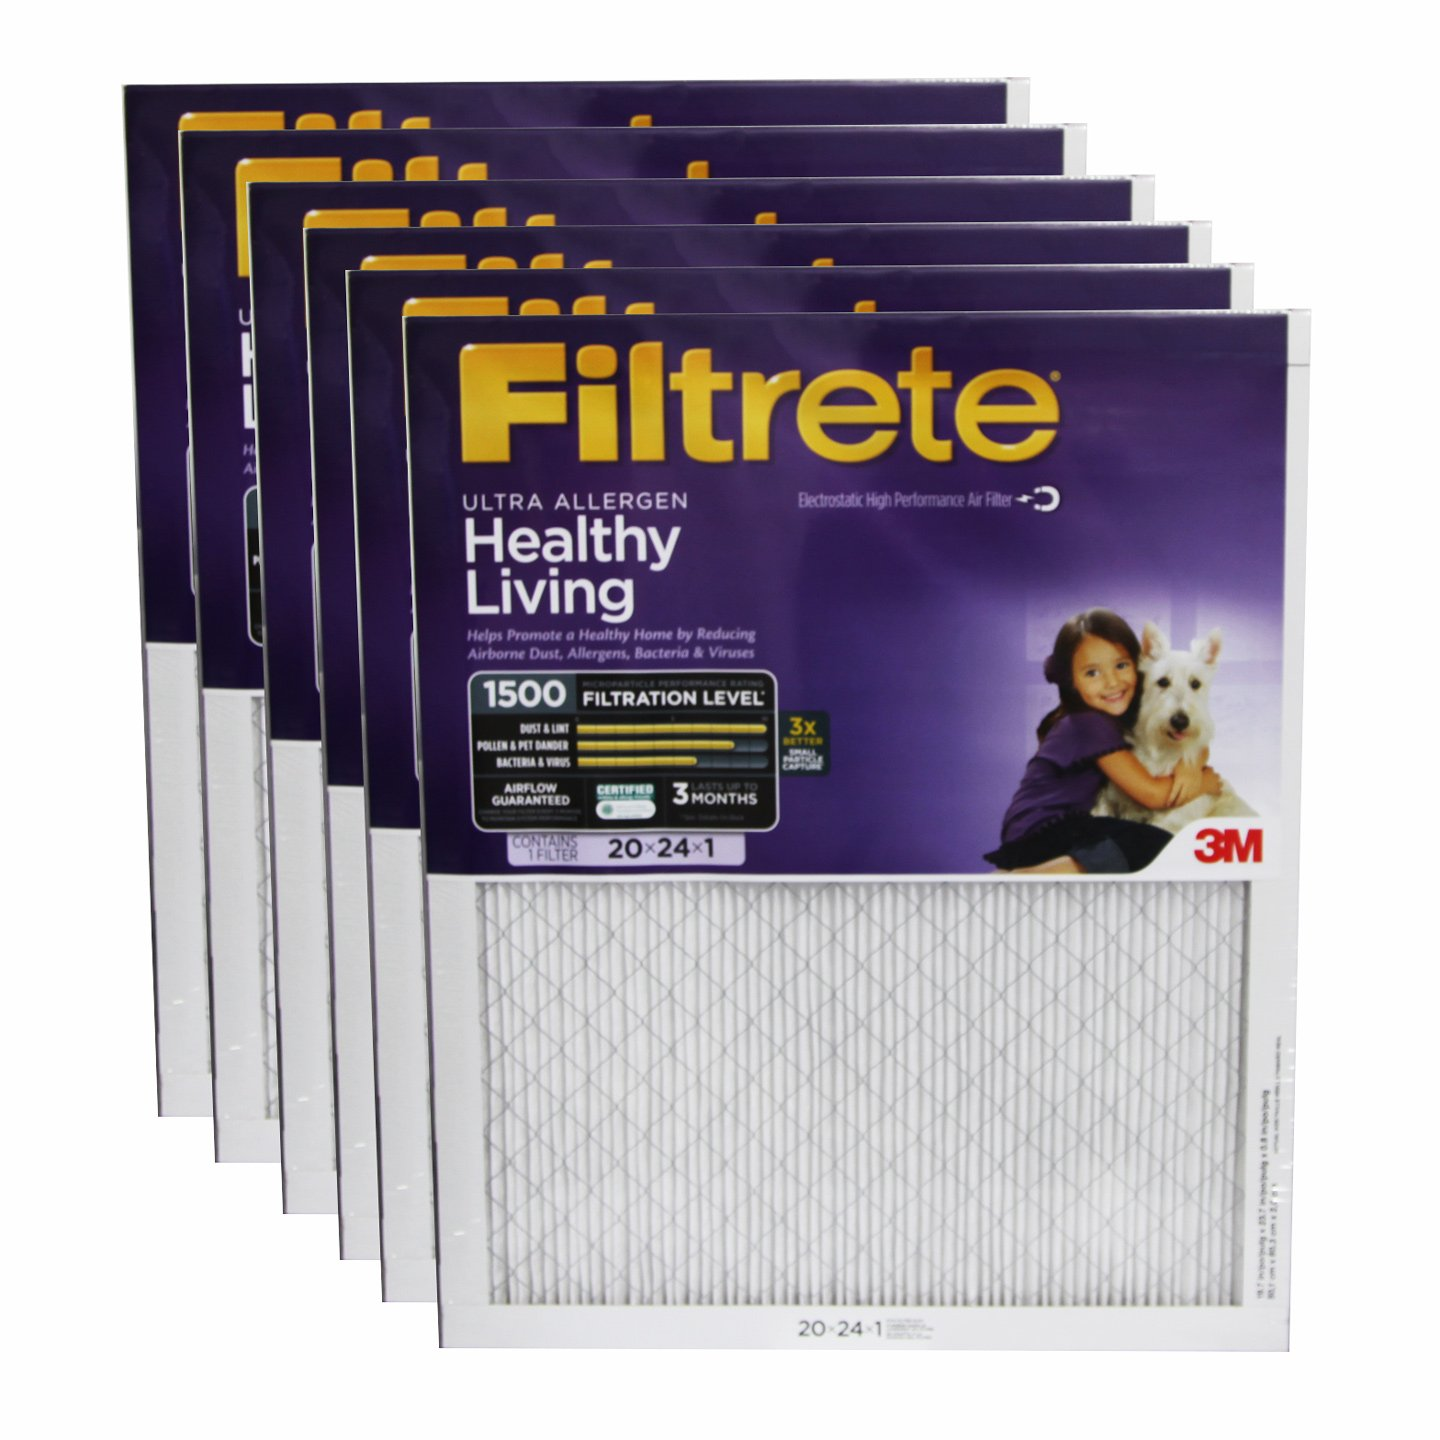 20x24x1 3M Filtrete Ultra Allergen Filter (6-Pack)